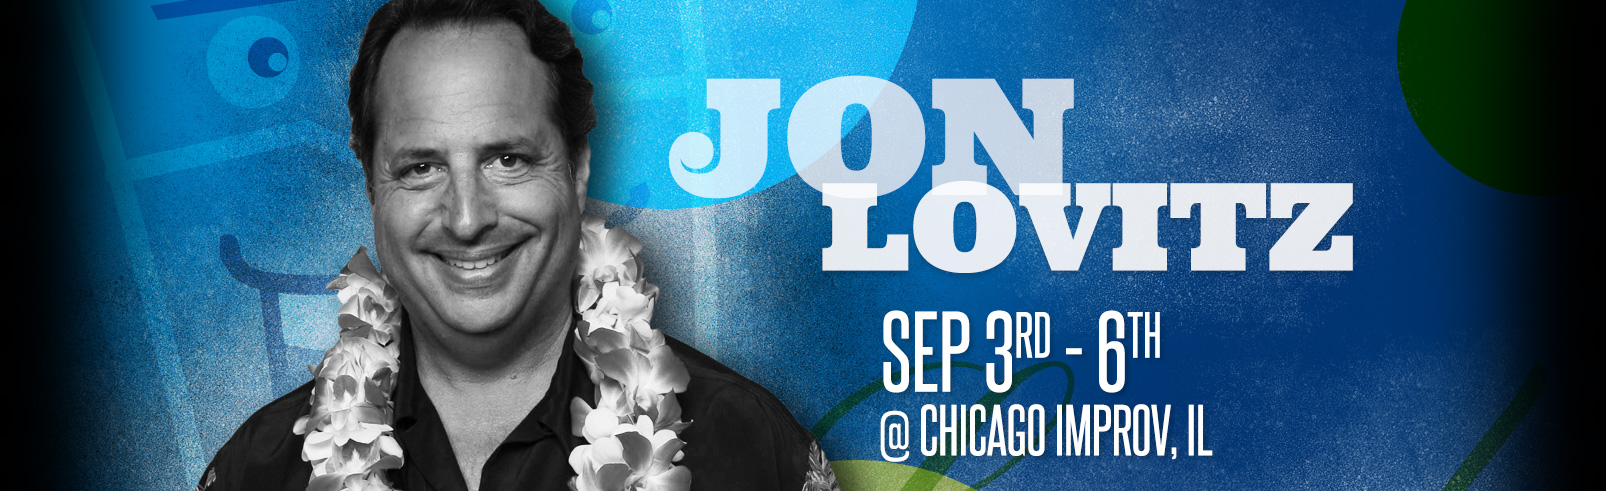 Jon Lovitz @ Chicago Improv